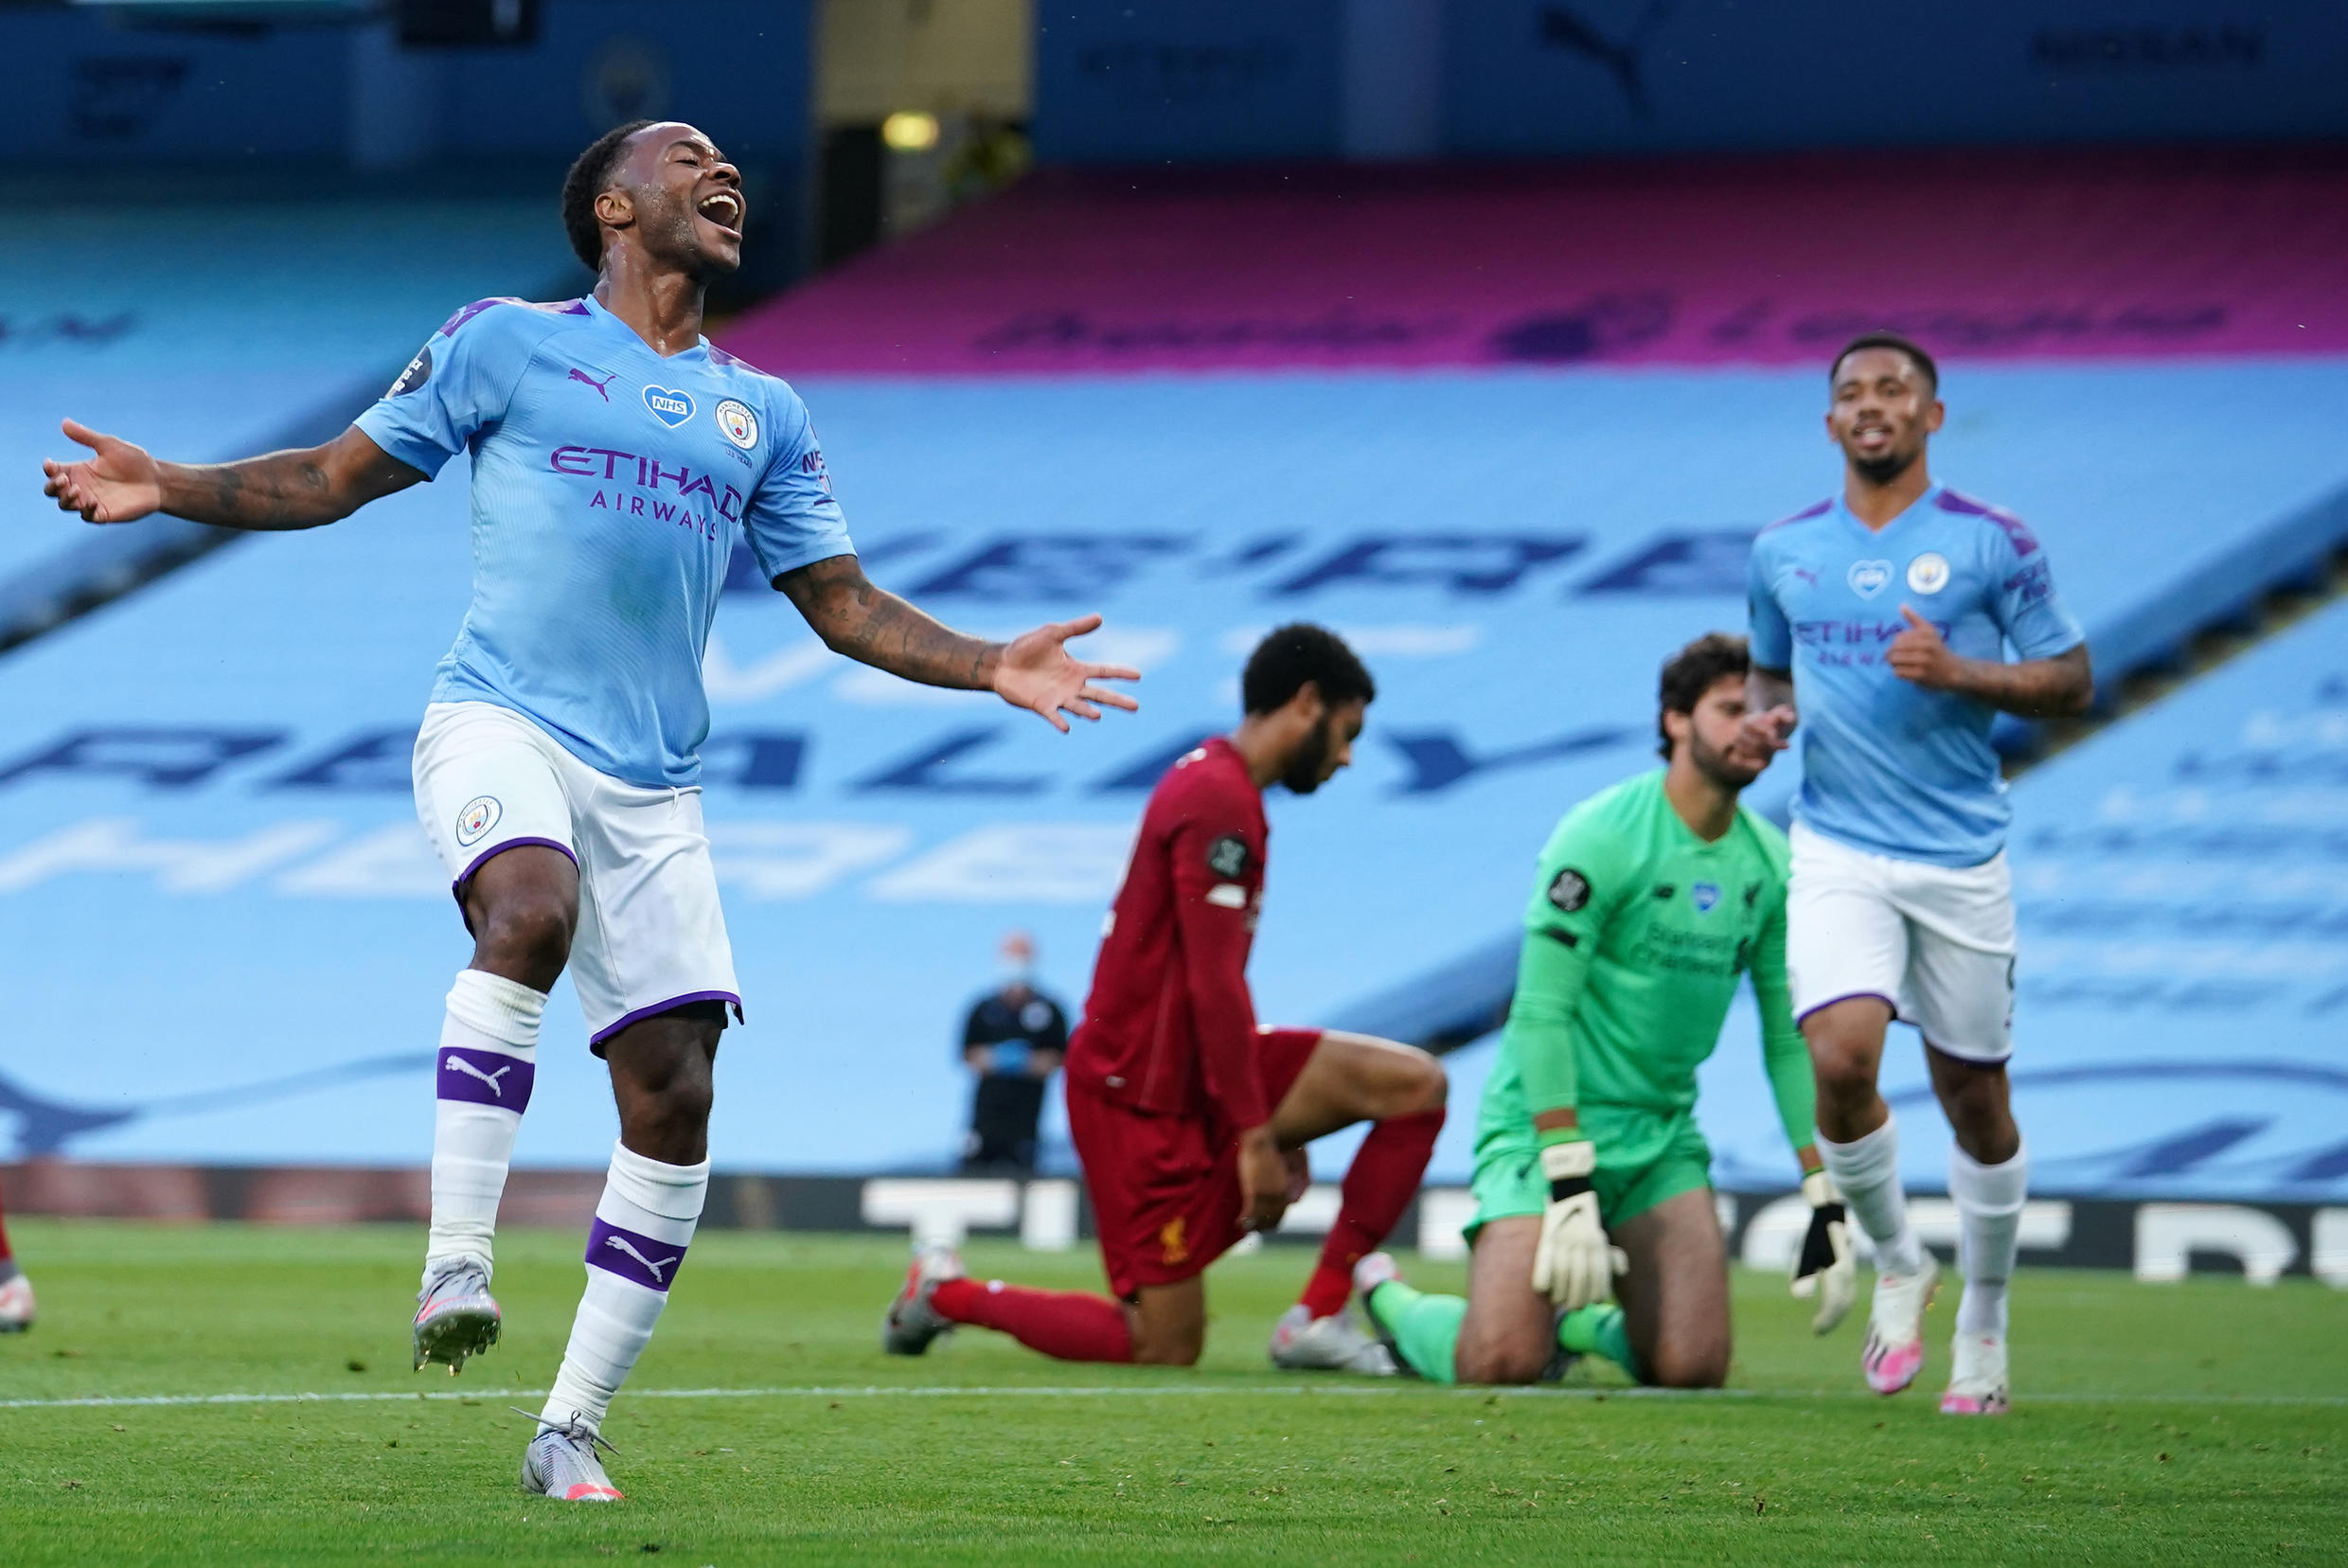 Manchester City's Raheem Sterling (left) celebrates scoring against his former club Liverpool